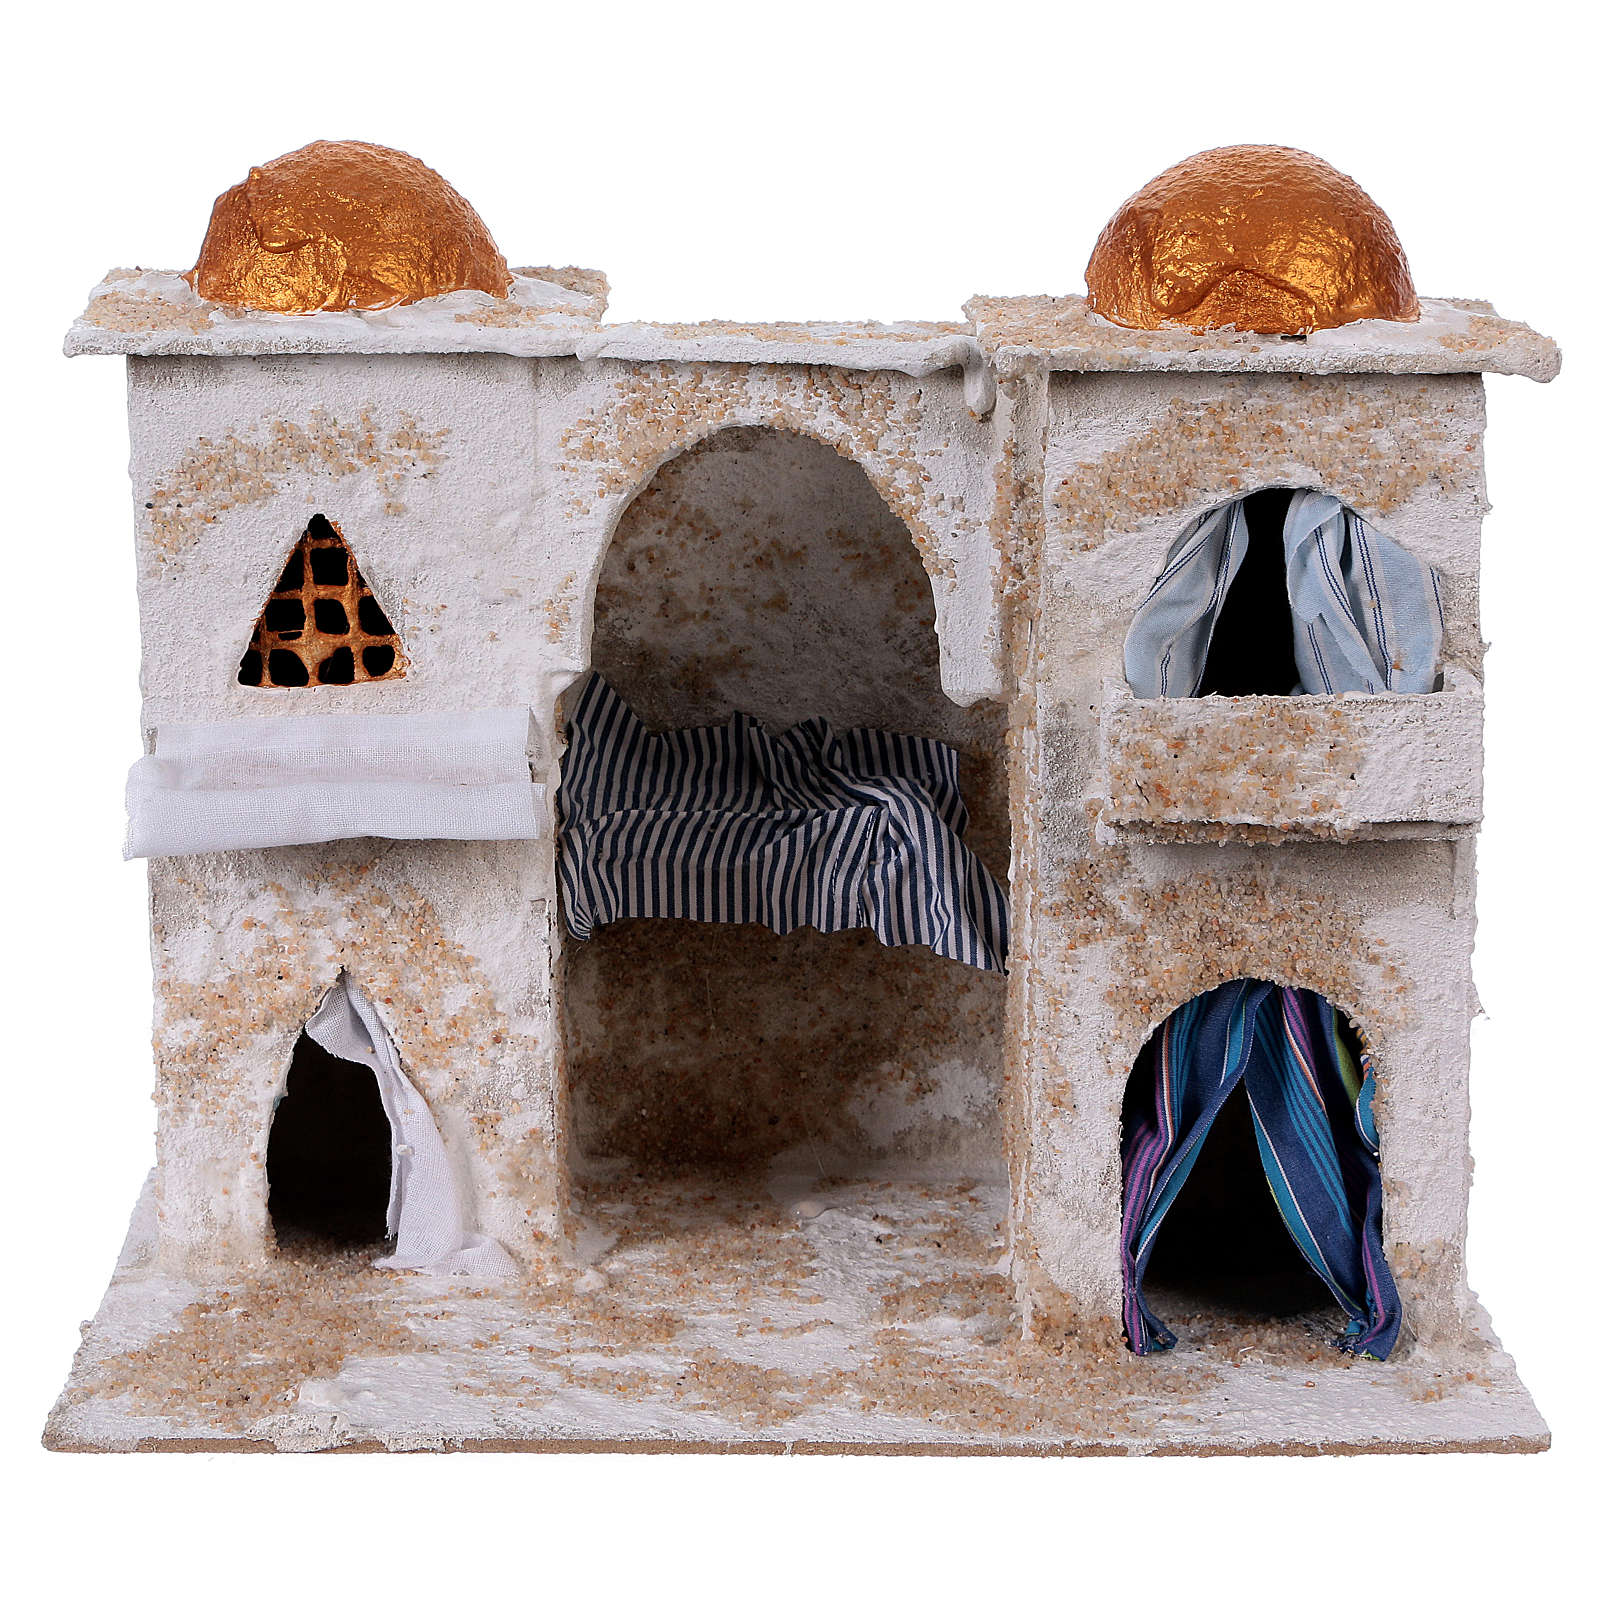 Arab house with two towers for Nativity scene 25x30x20 cm 4